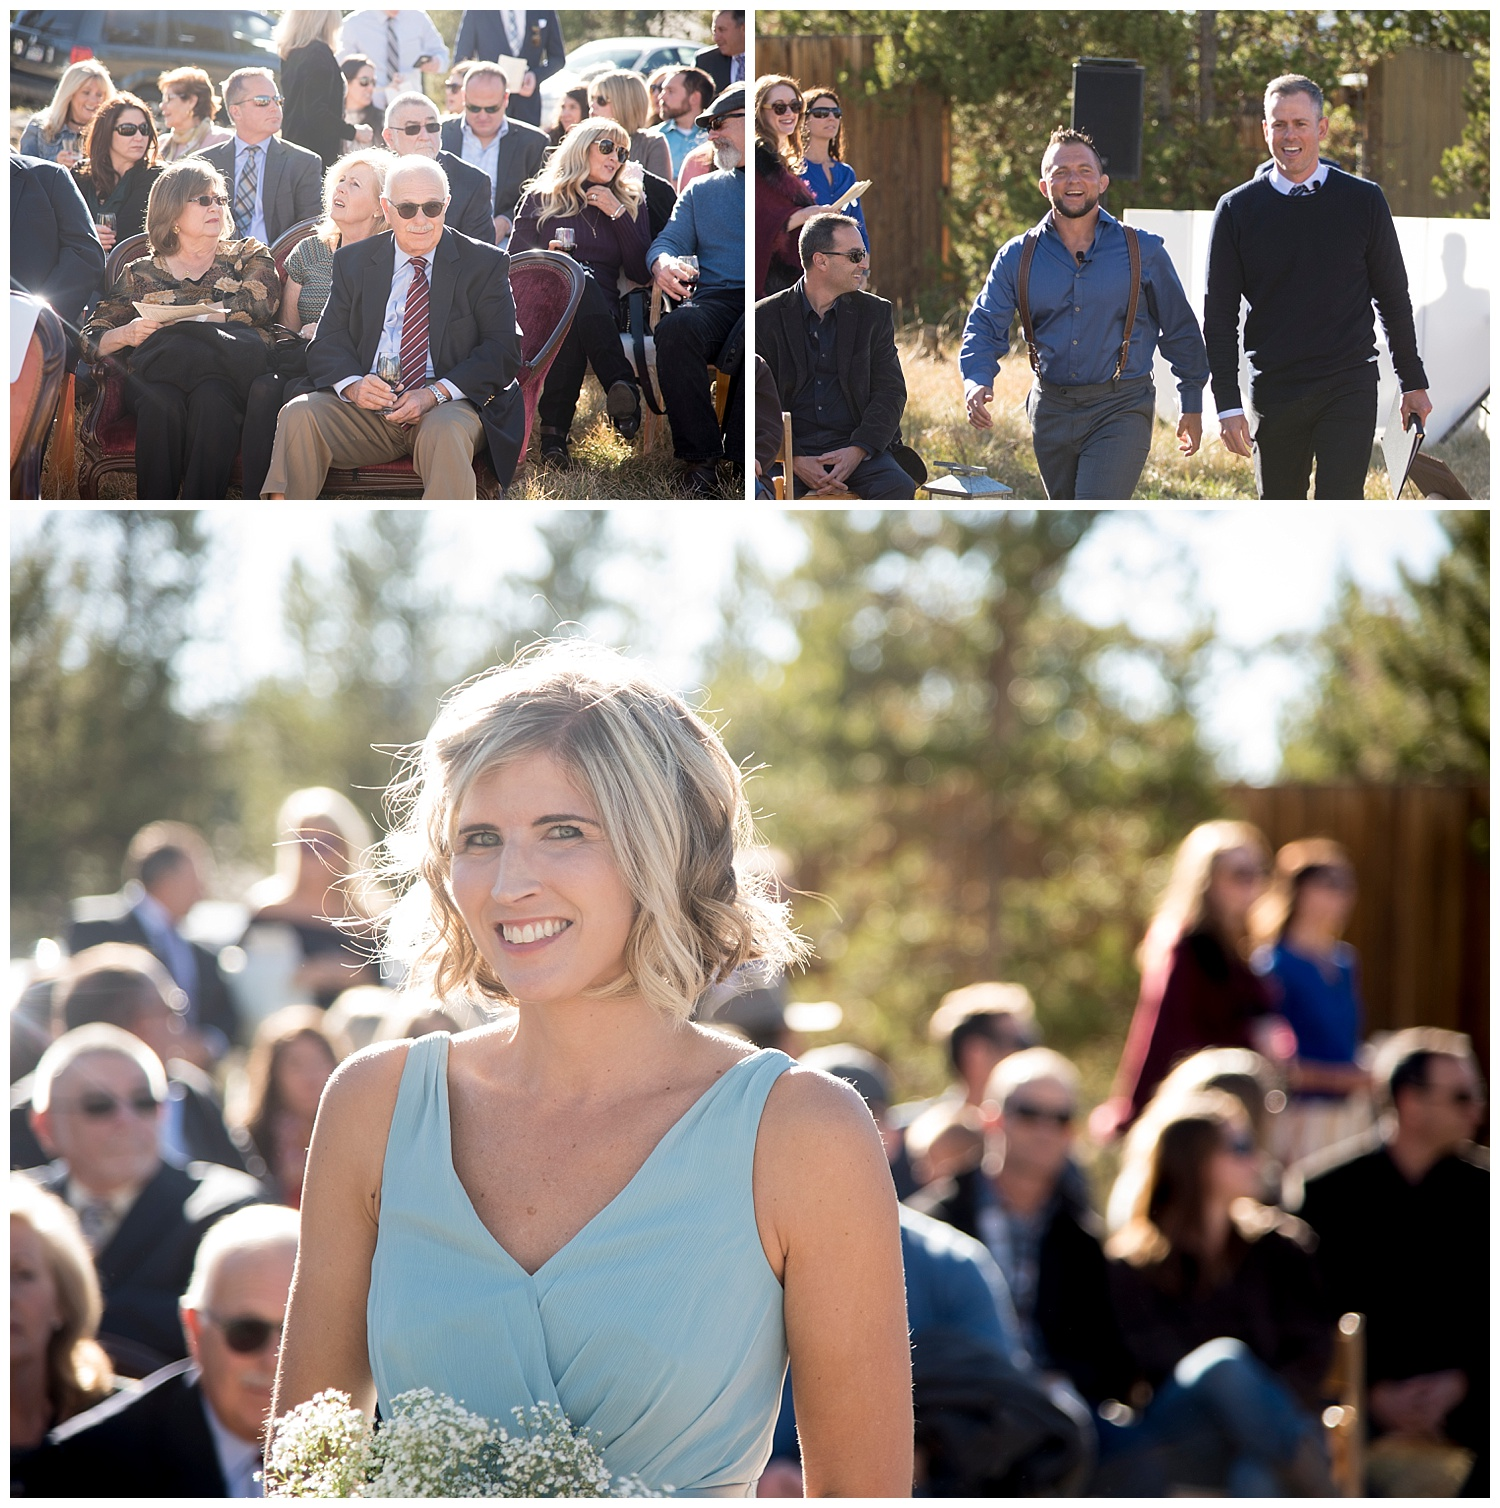 Candid Photos of Guests at Ceremony | Carolyn and Shawn's Wild Horse Inn Wedding at Devil's Thumb Ranch | Fraser Colorado Photography | Farm Wedding Photographer | Apollo Fields Photojournalism